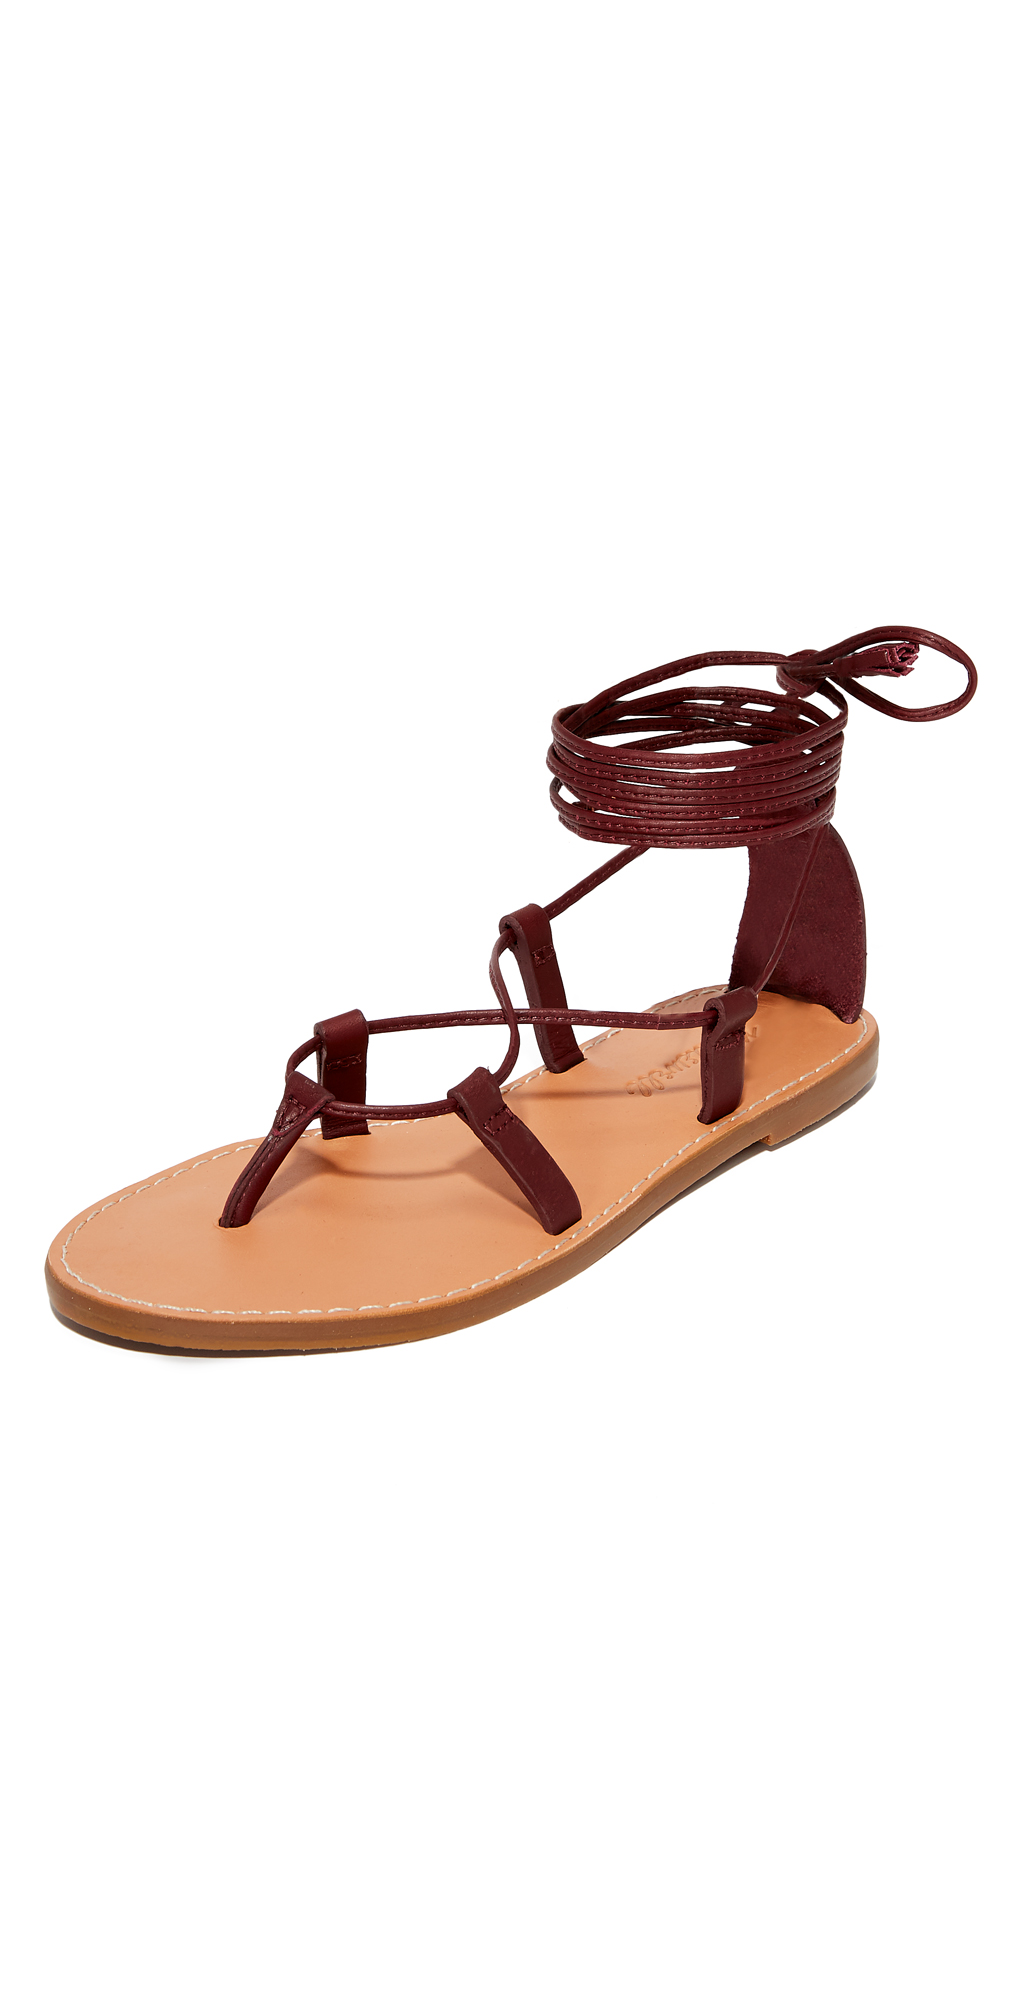 Boardwalk Lace Up Gladiator Sandals Madewell